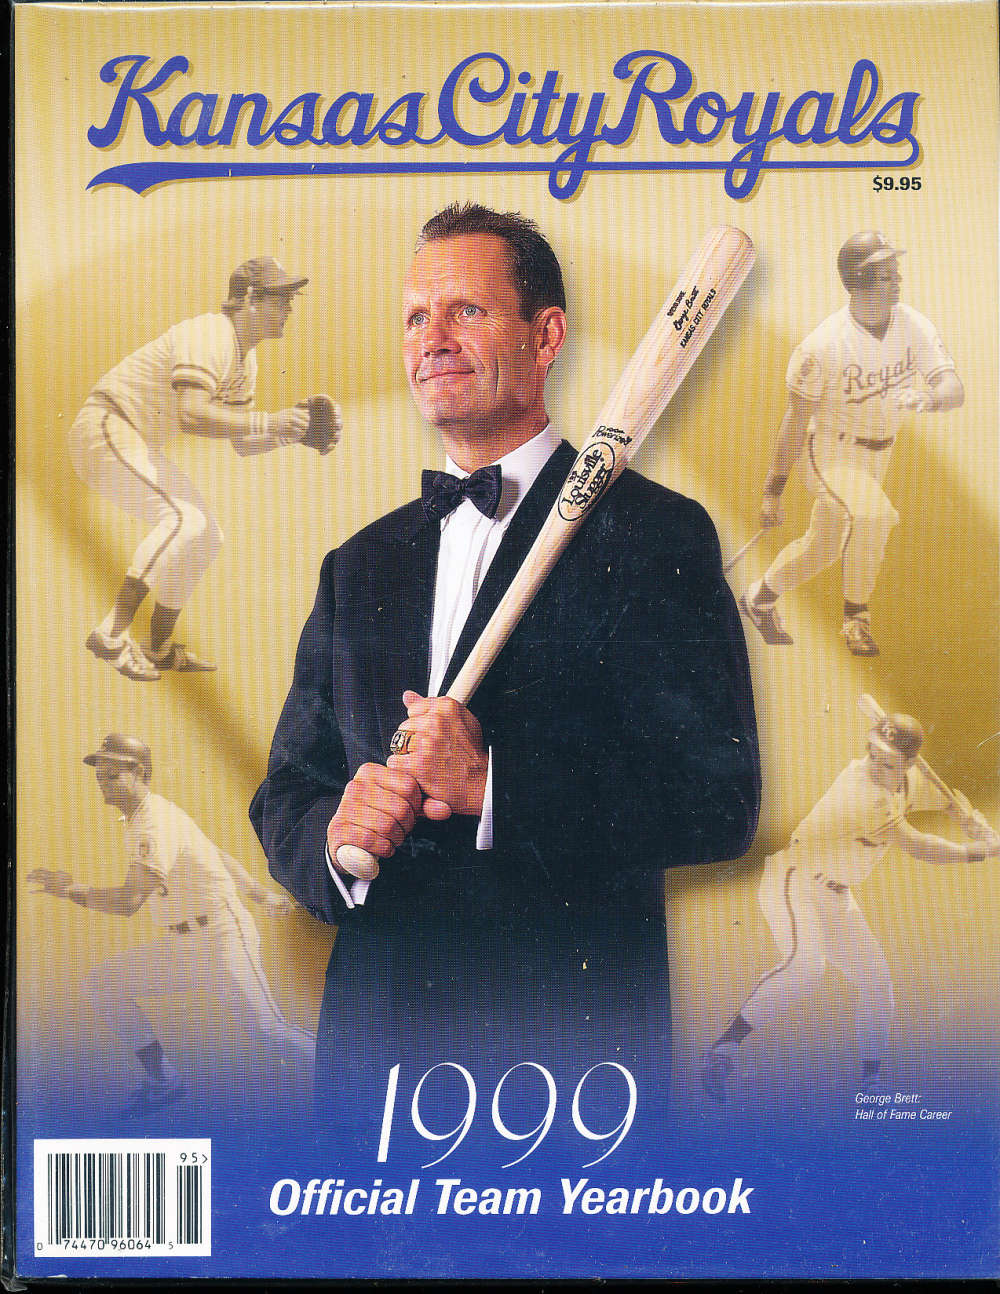 1999 Kansas city Royals baseball yearbook